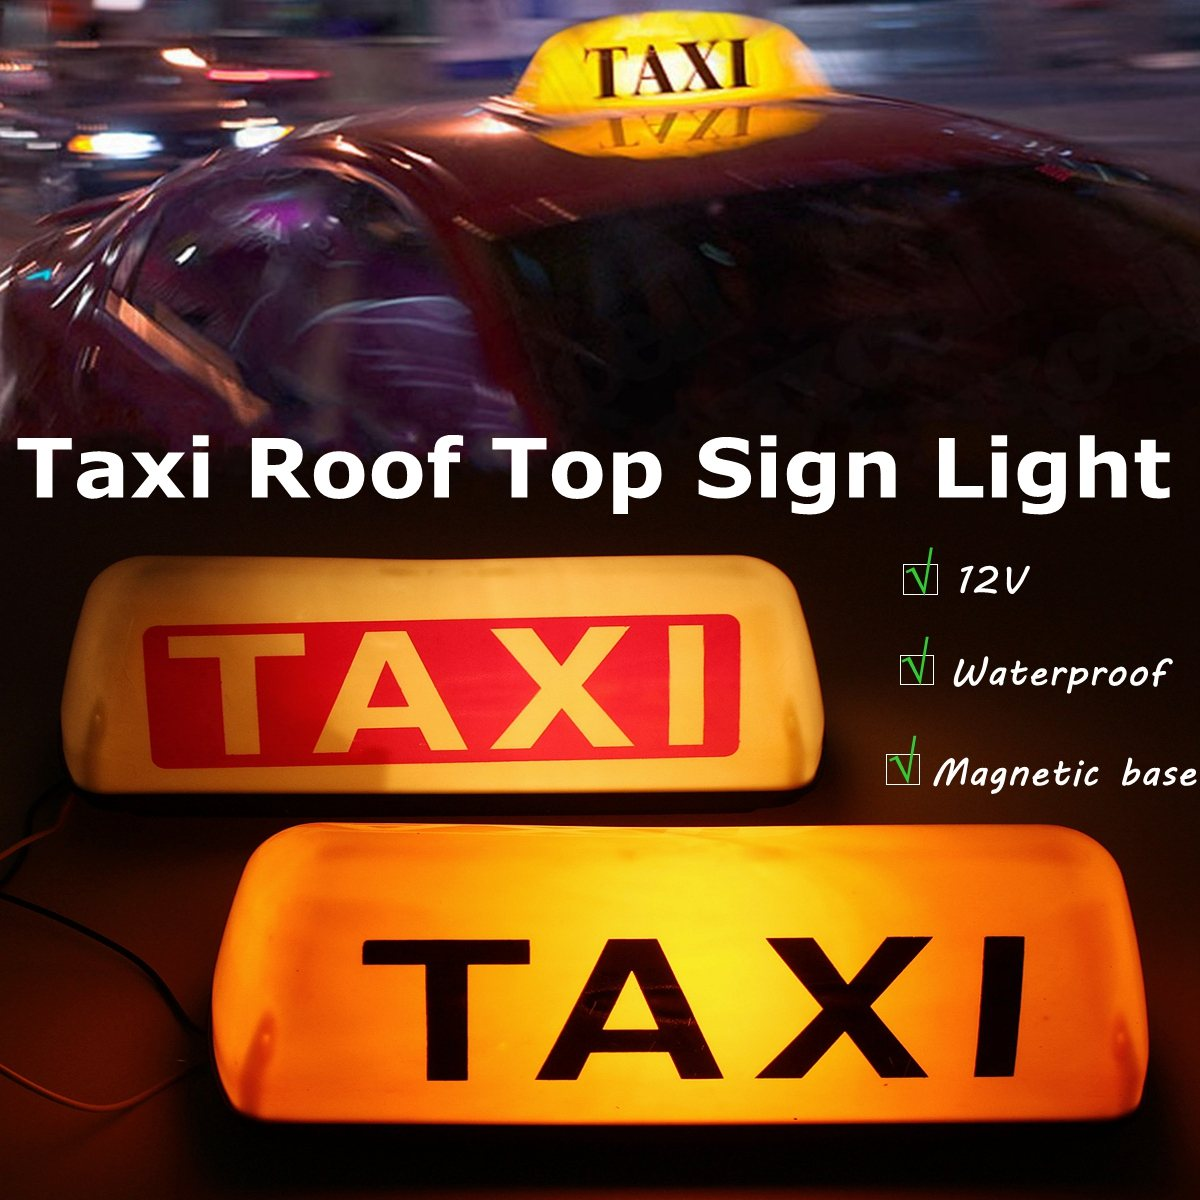 Taxi Roof Waterproof Sign Magnetic Taximeter Cab Top Lamp 12V DC Light izztoss yellow taxi cab roof top sign light lamp magnetic large size car vehicle indicator lights